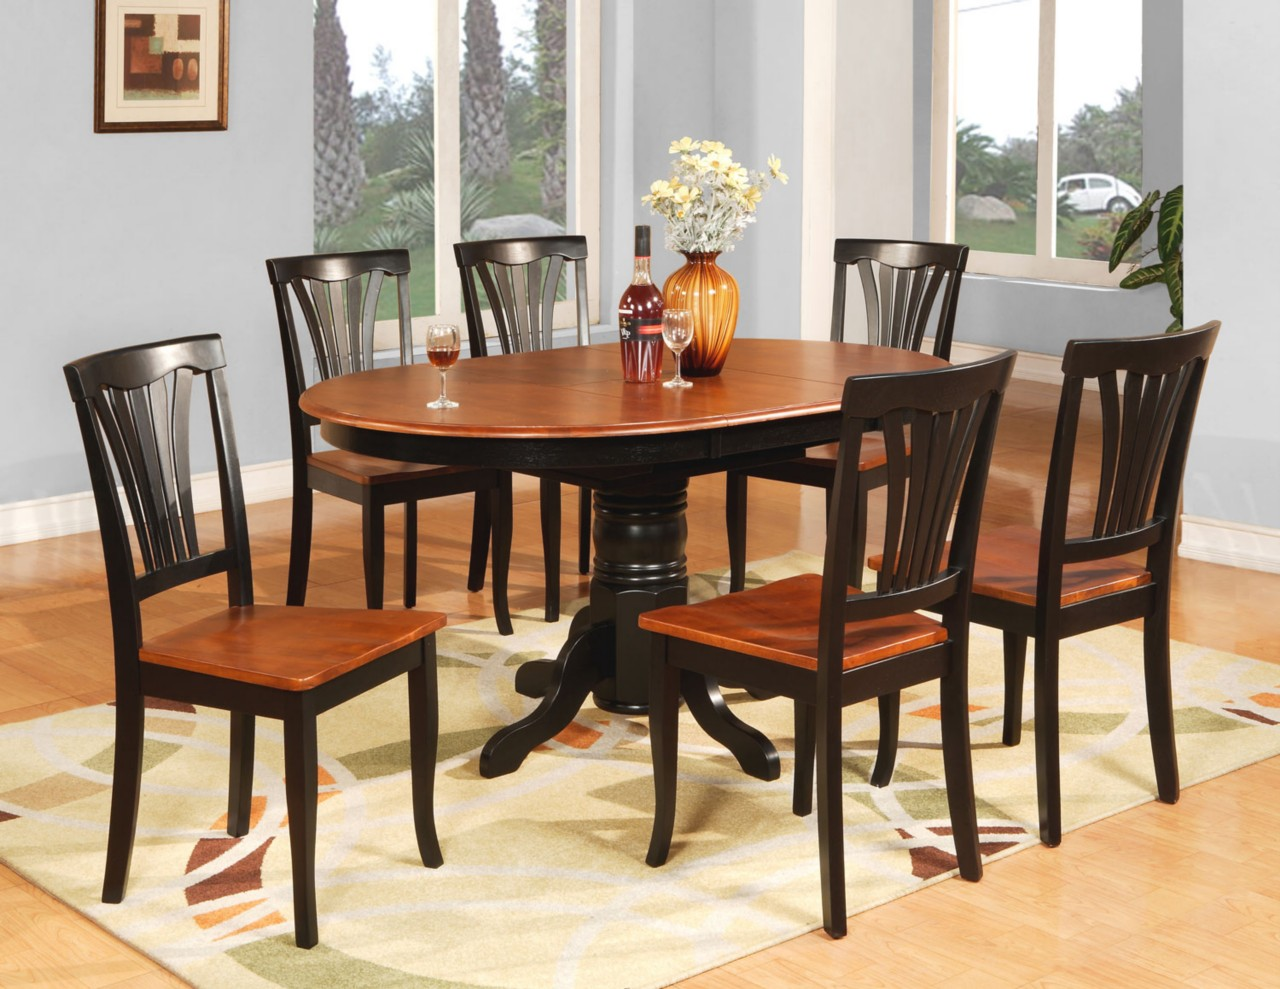 7 pc oval dinette kitchen dining room table 6 chairs ebay for Dining room sofa seating